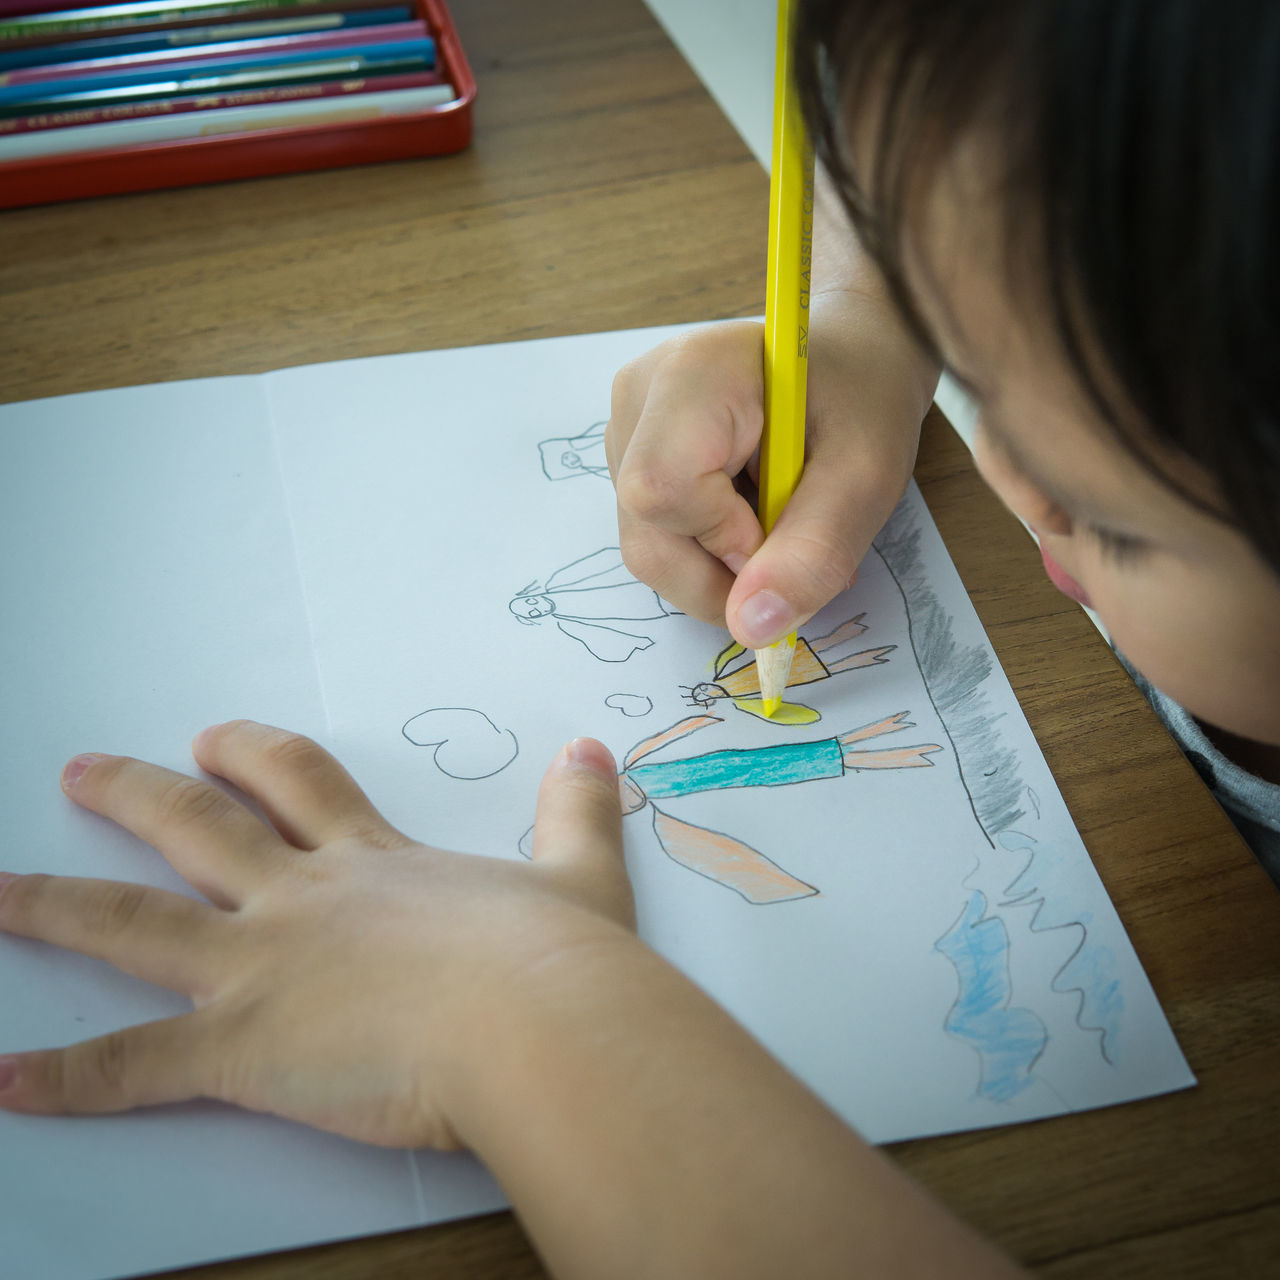 kid drawing her family picture Child Childhood Classroom Color Pencils  Drawing - Activity Education Family Girls Indoors  Learning Leisure Activity Lifestyles One Person Paper Pencil Real People Sketch Table Writing